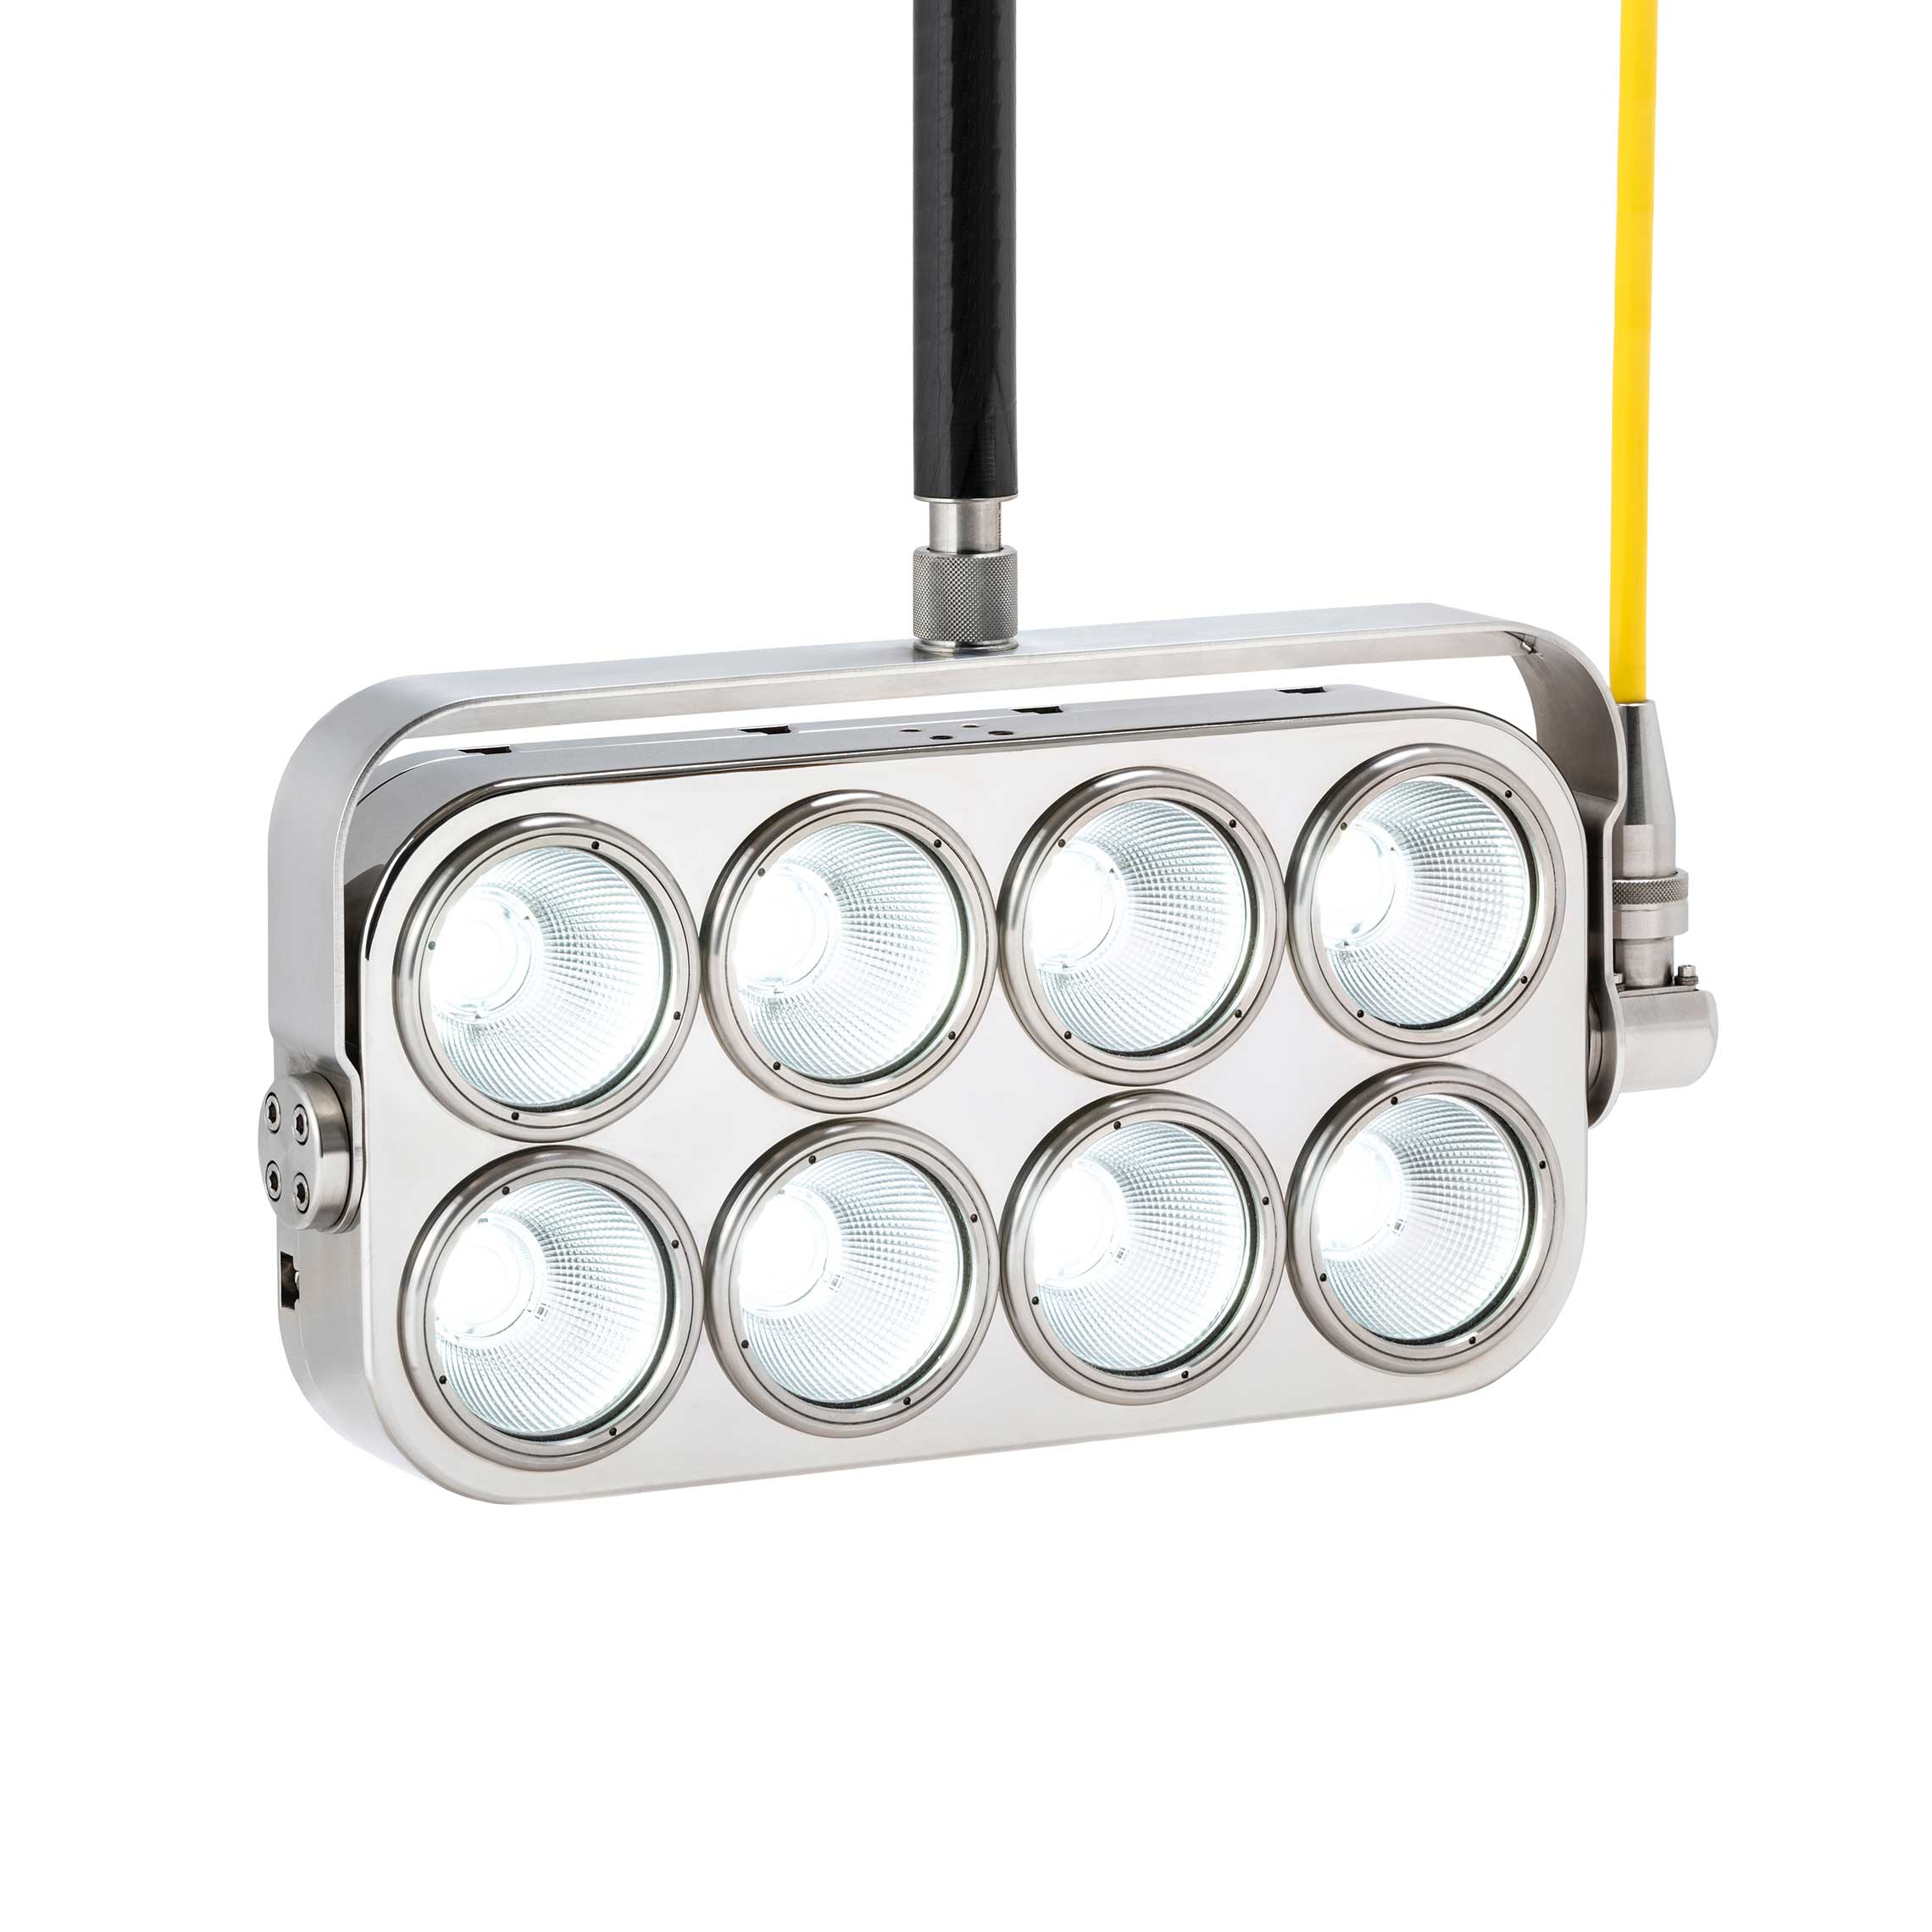 VT 800 PL LED Lighting